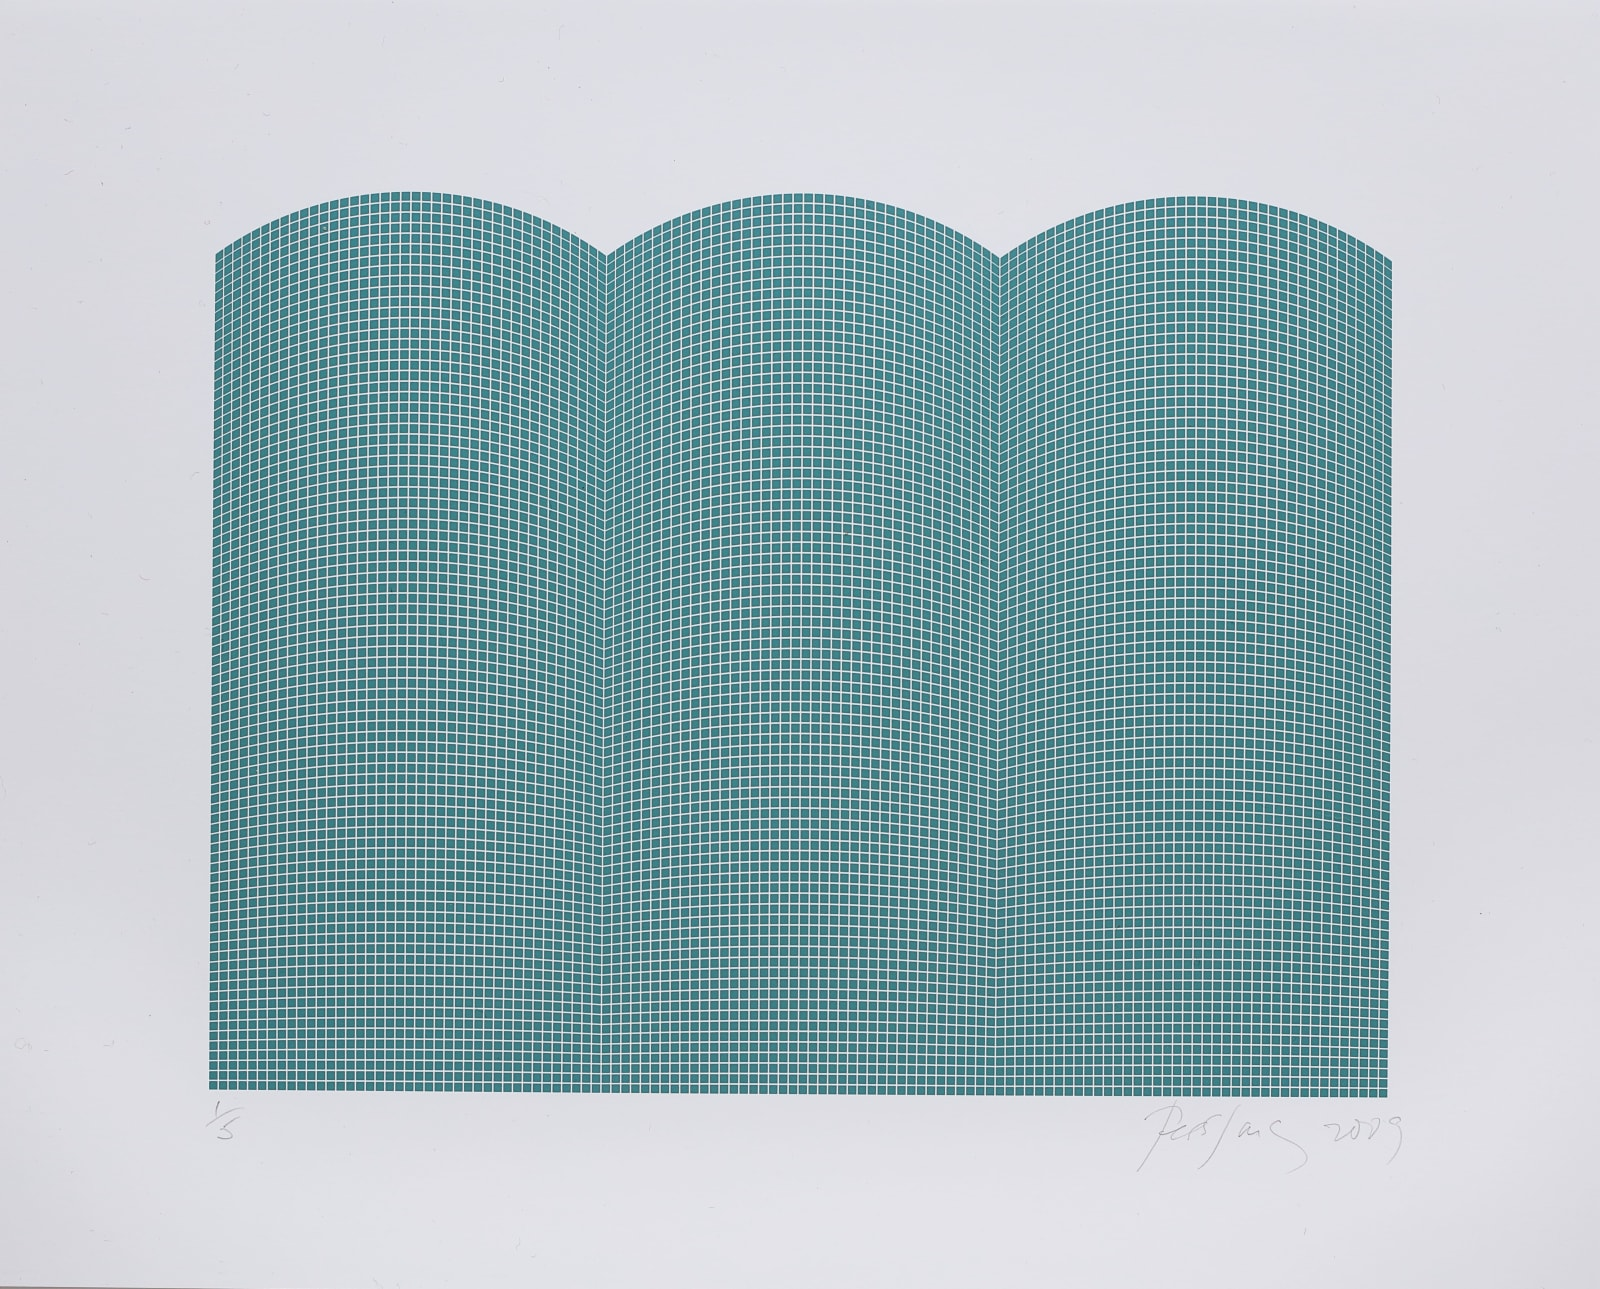 Tess Jaray, After Damascus (Green), 2010